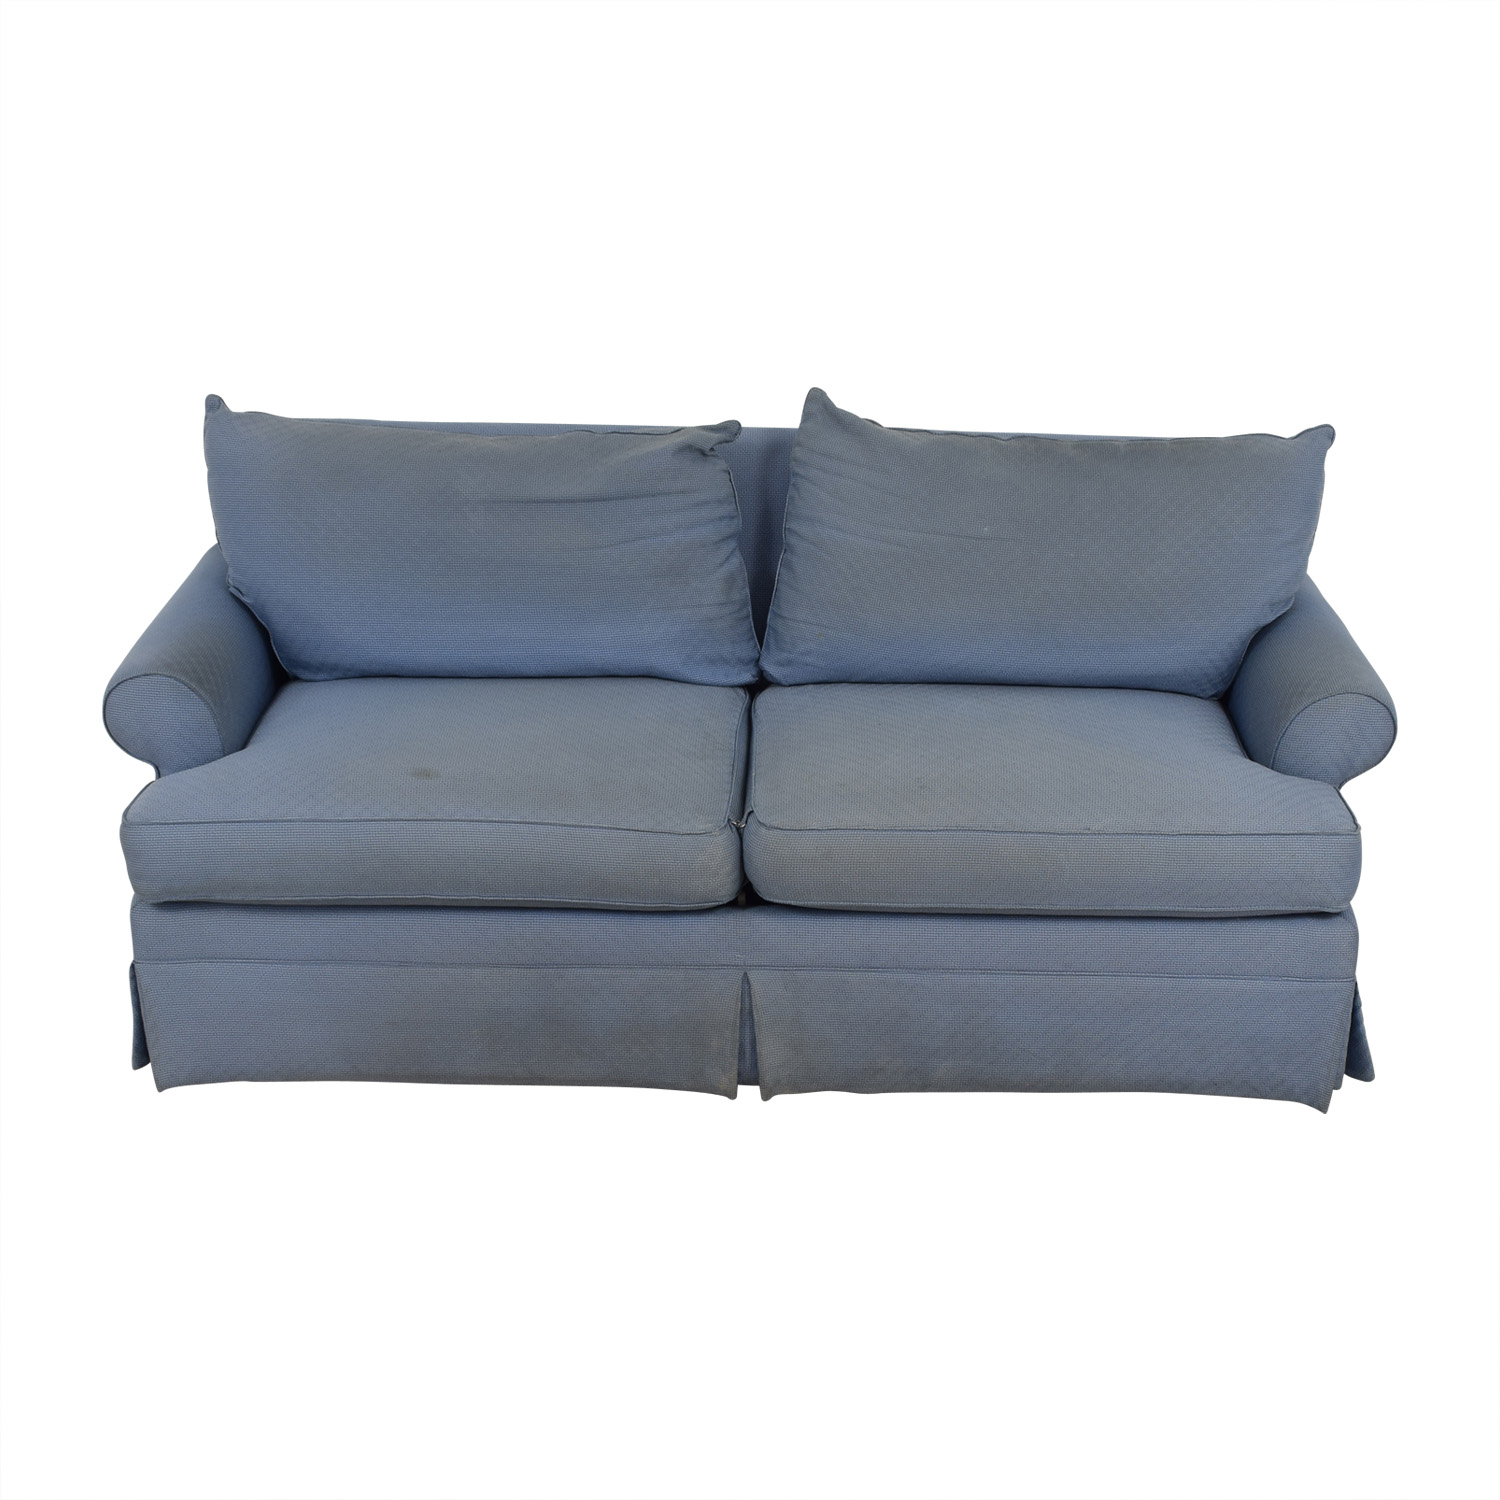 shop Ethan Allen Ethan Allen Blue Two-Cushion Sofa online